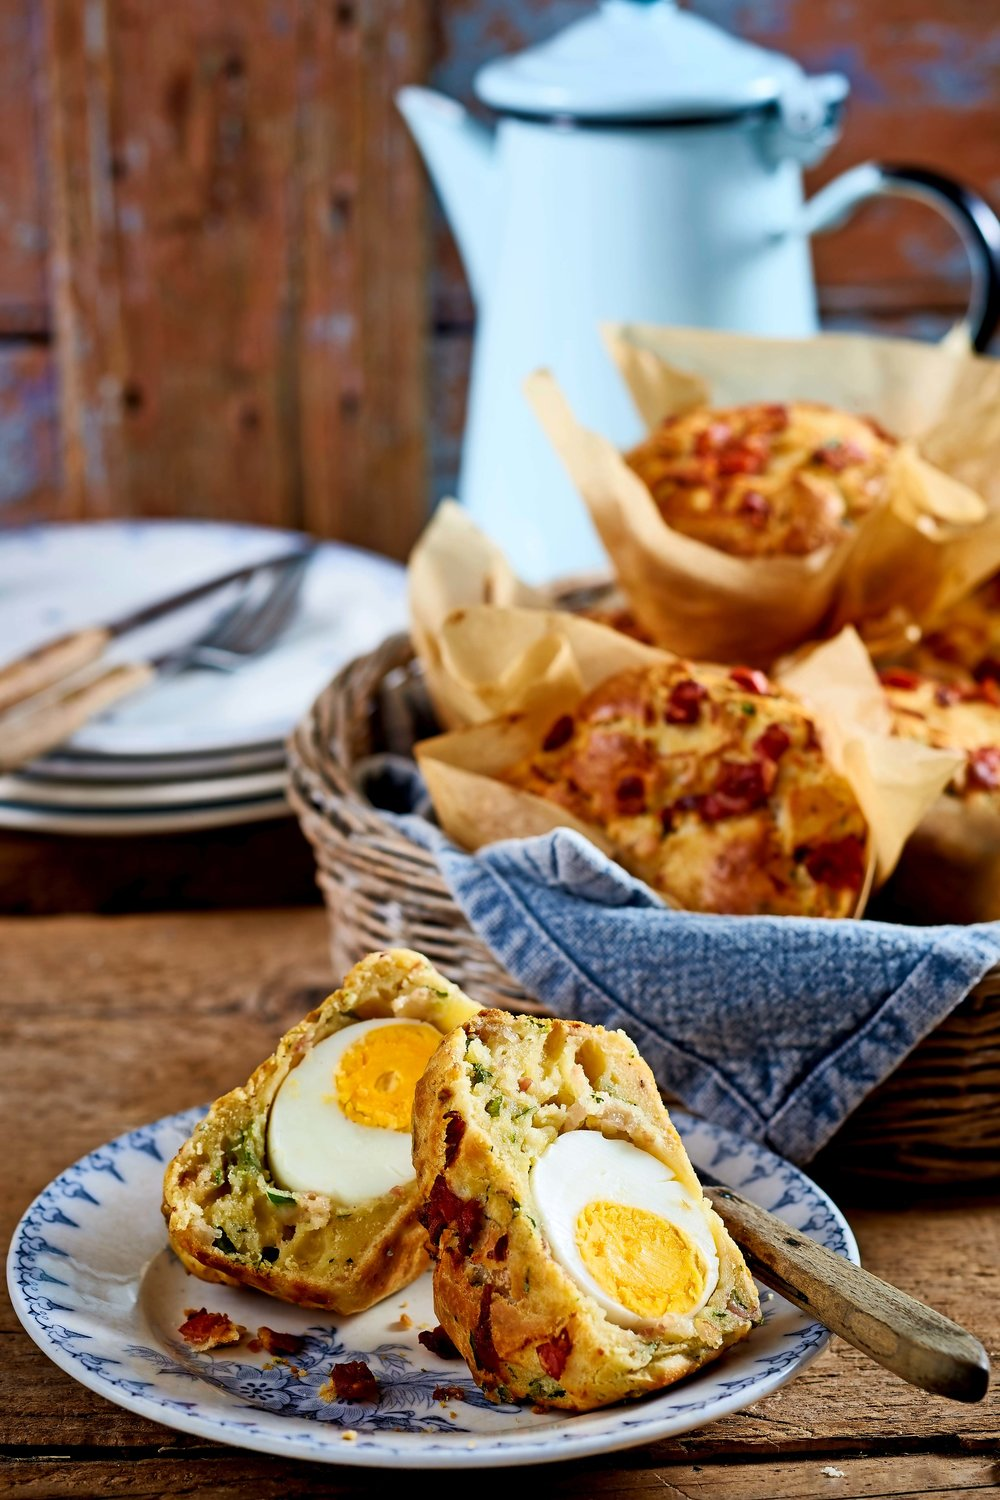 Served with coffee for brunch or as a savoury picnic treat, these muffins make a tasty, filling snack. From the April 2018 issue of LandScape